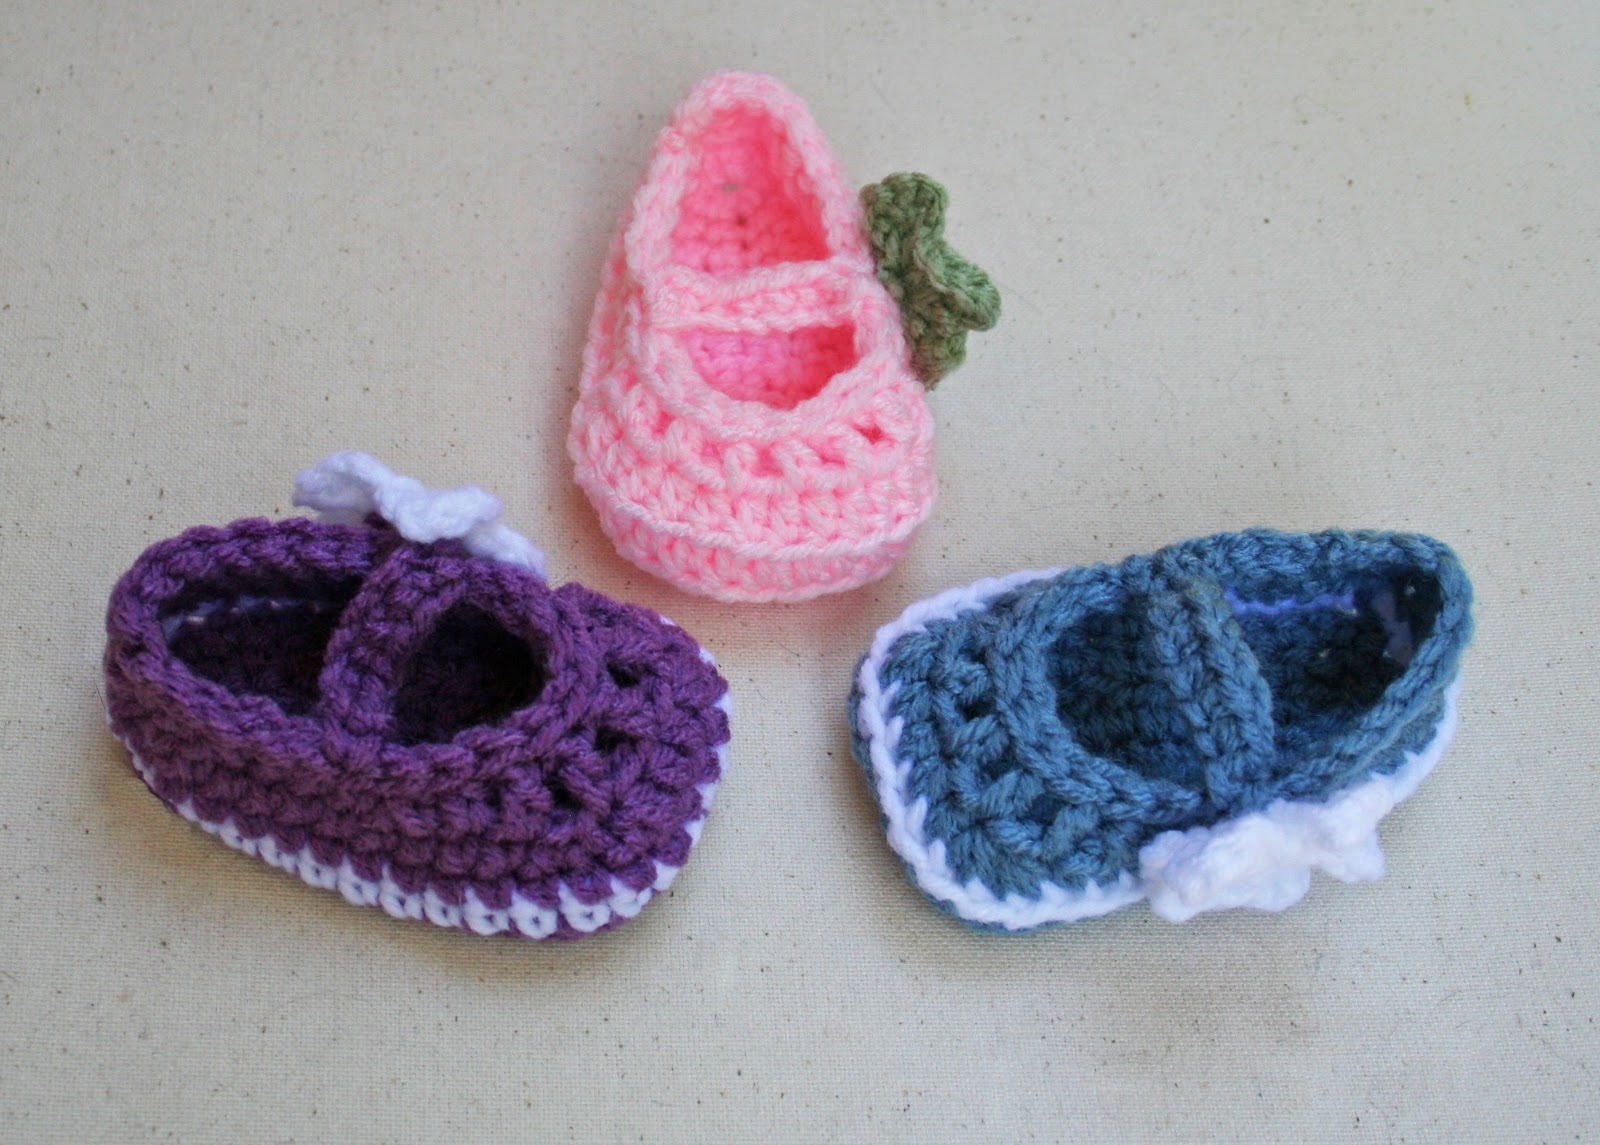 Crochet Pattern For A Baby Jacket : Tampa Bay Crochet: Free Pattern Mary Jane Skimmer Booties